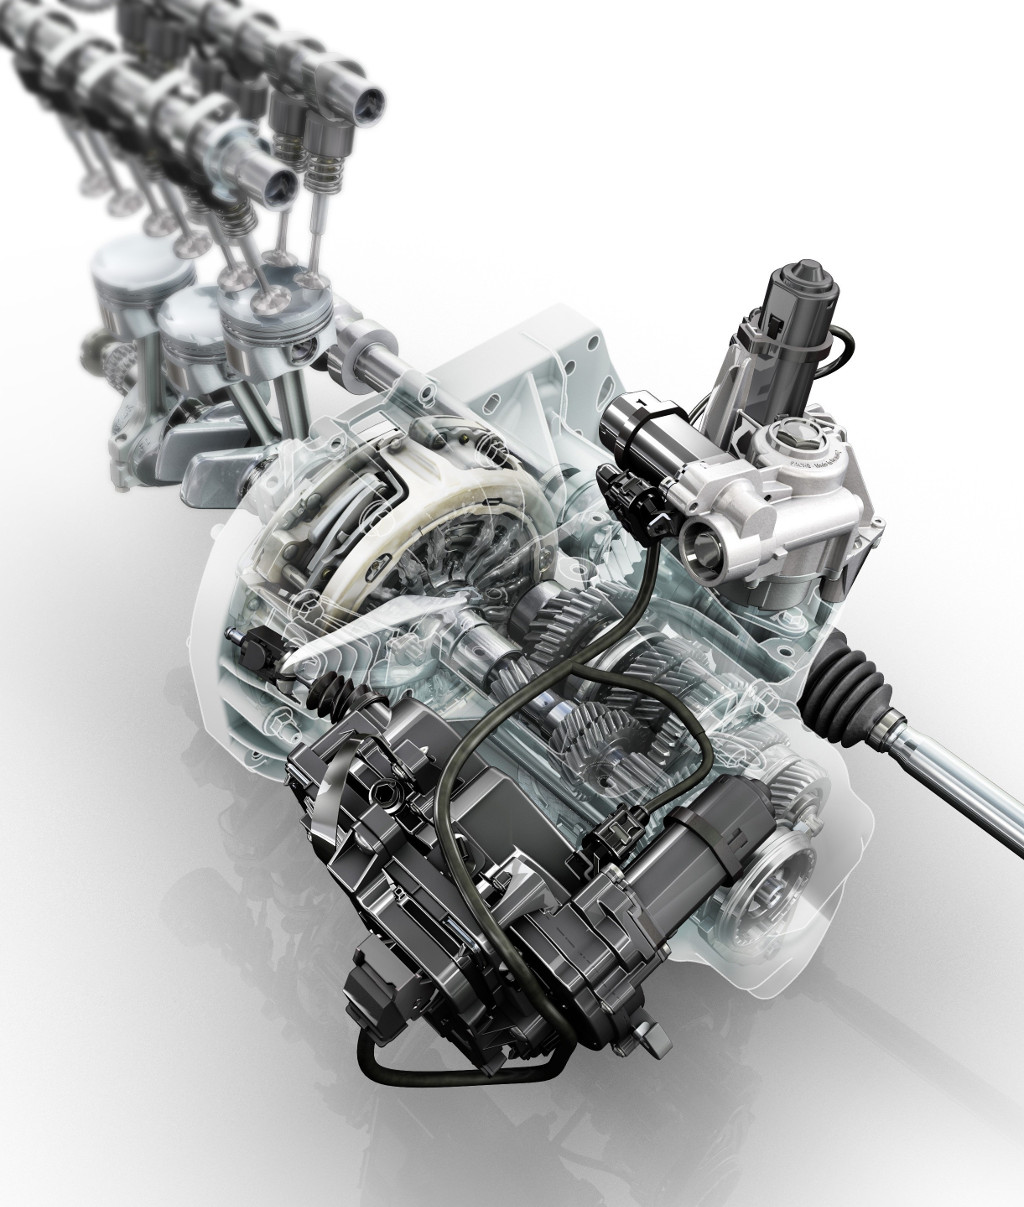 Easy-R automated manual transmission